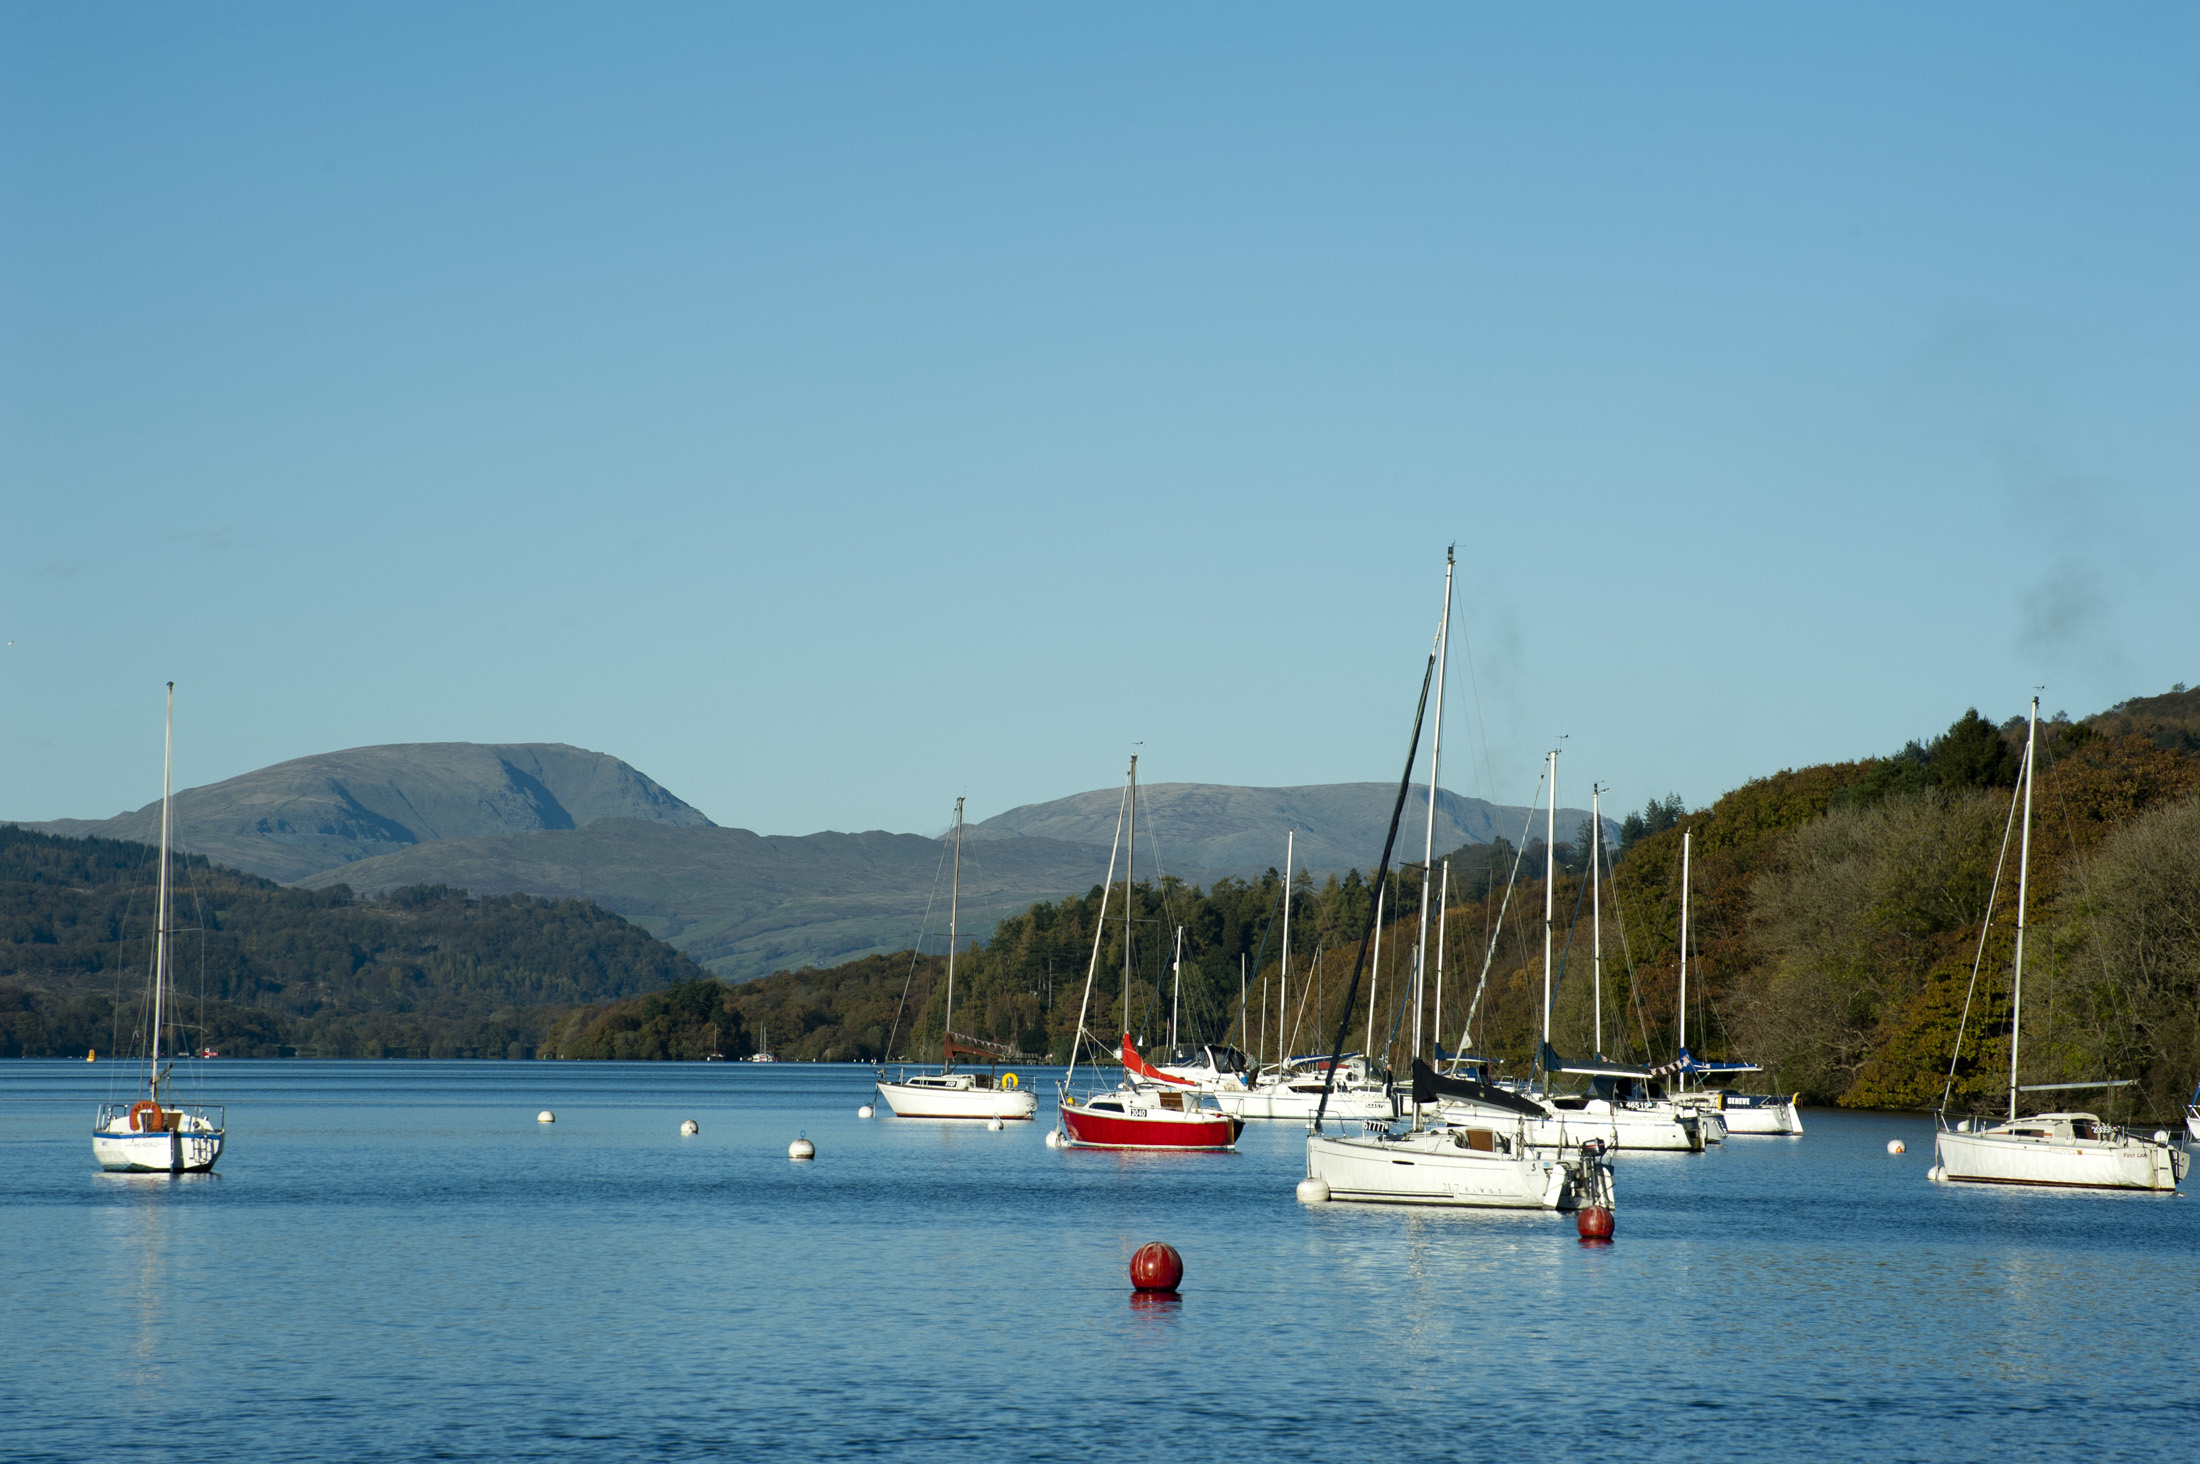 Yachts moored to buoys on the calm water of the lake at Windermere in the Lake District in Cumbria